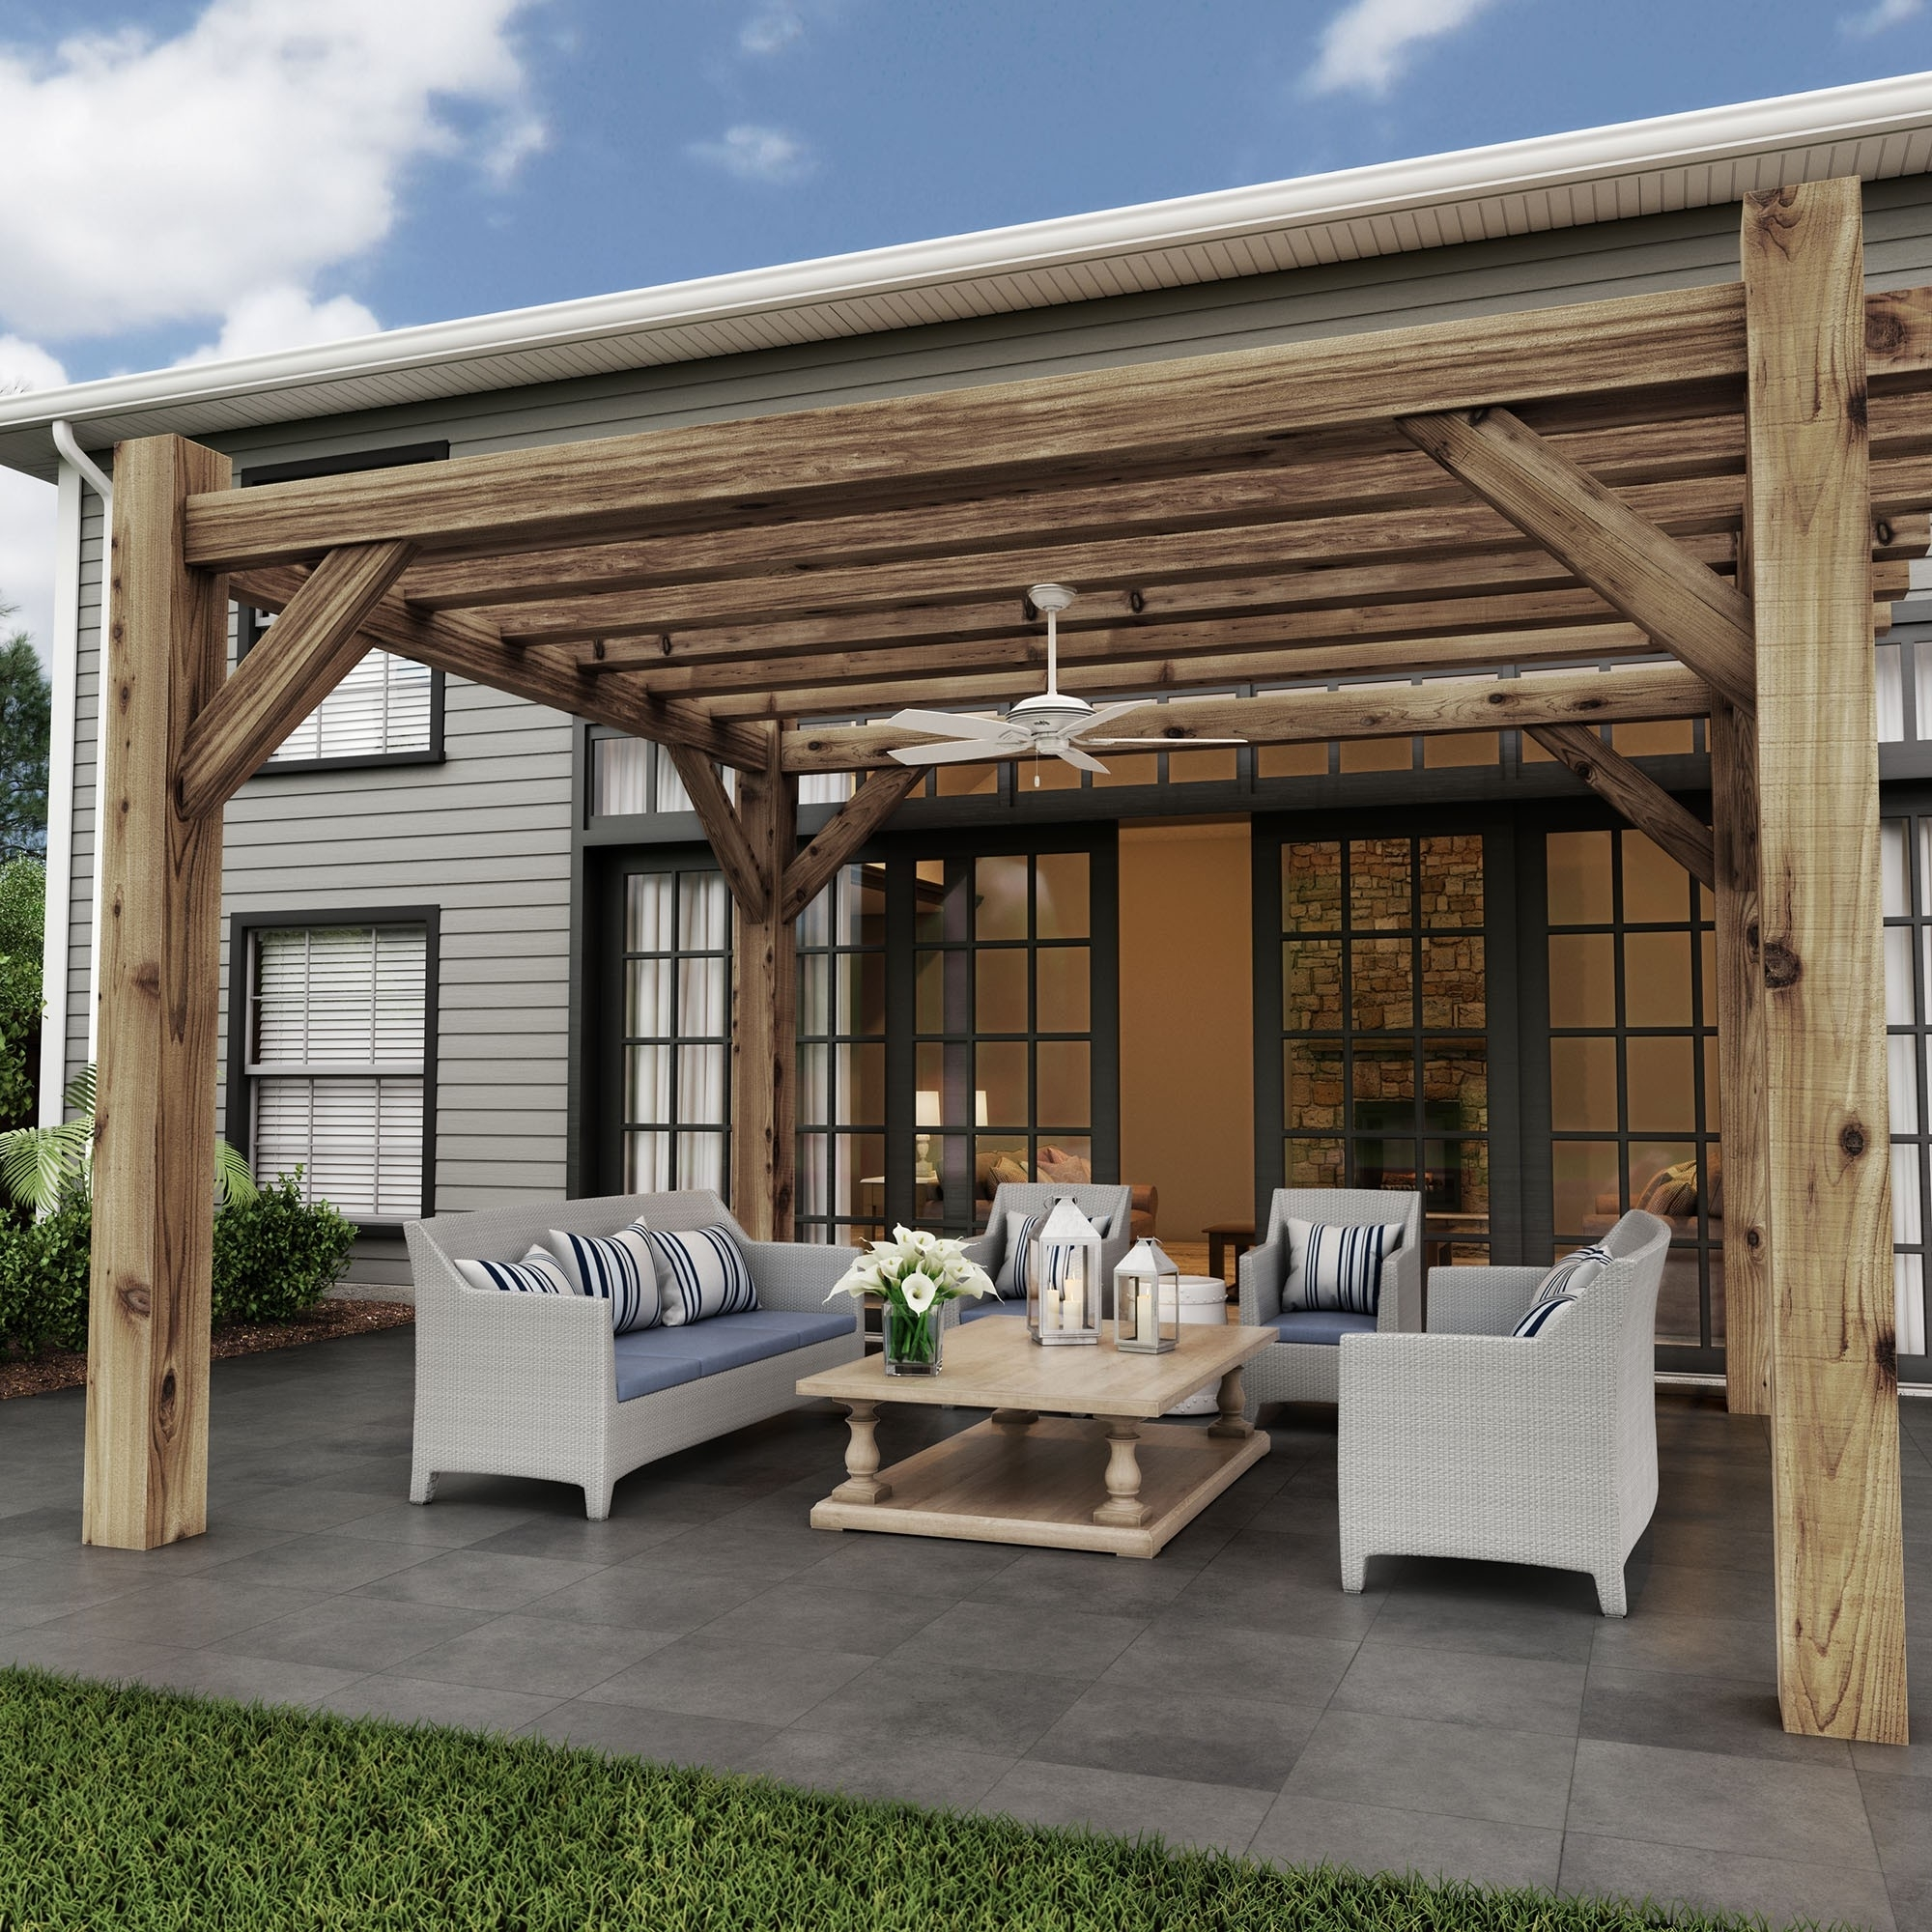 Fashionable Outdoor Ceiling Fans For Pergola Intended For Enhancing Outdoor Spaces: Four Reasons To Add A Fan To Your Pergola (Gallery 19 of 20)